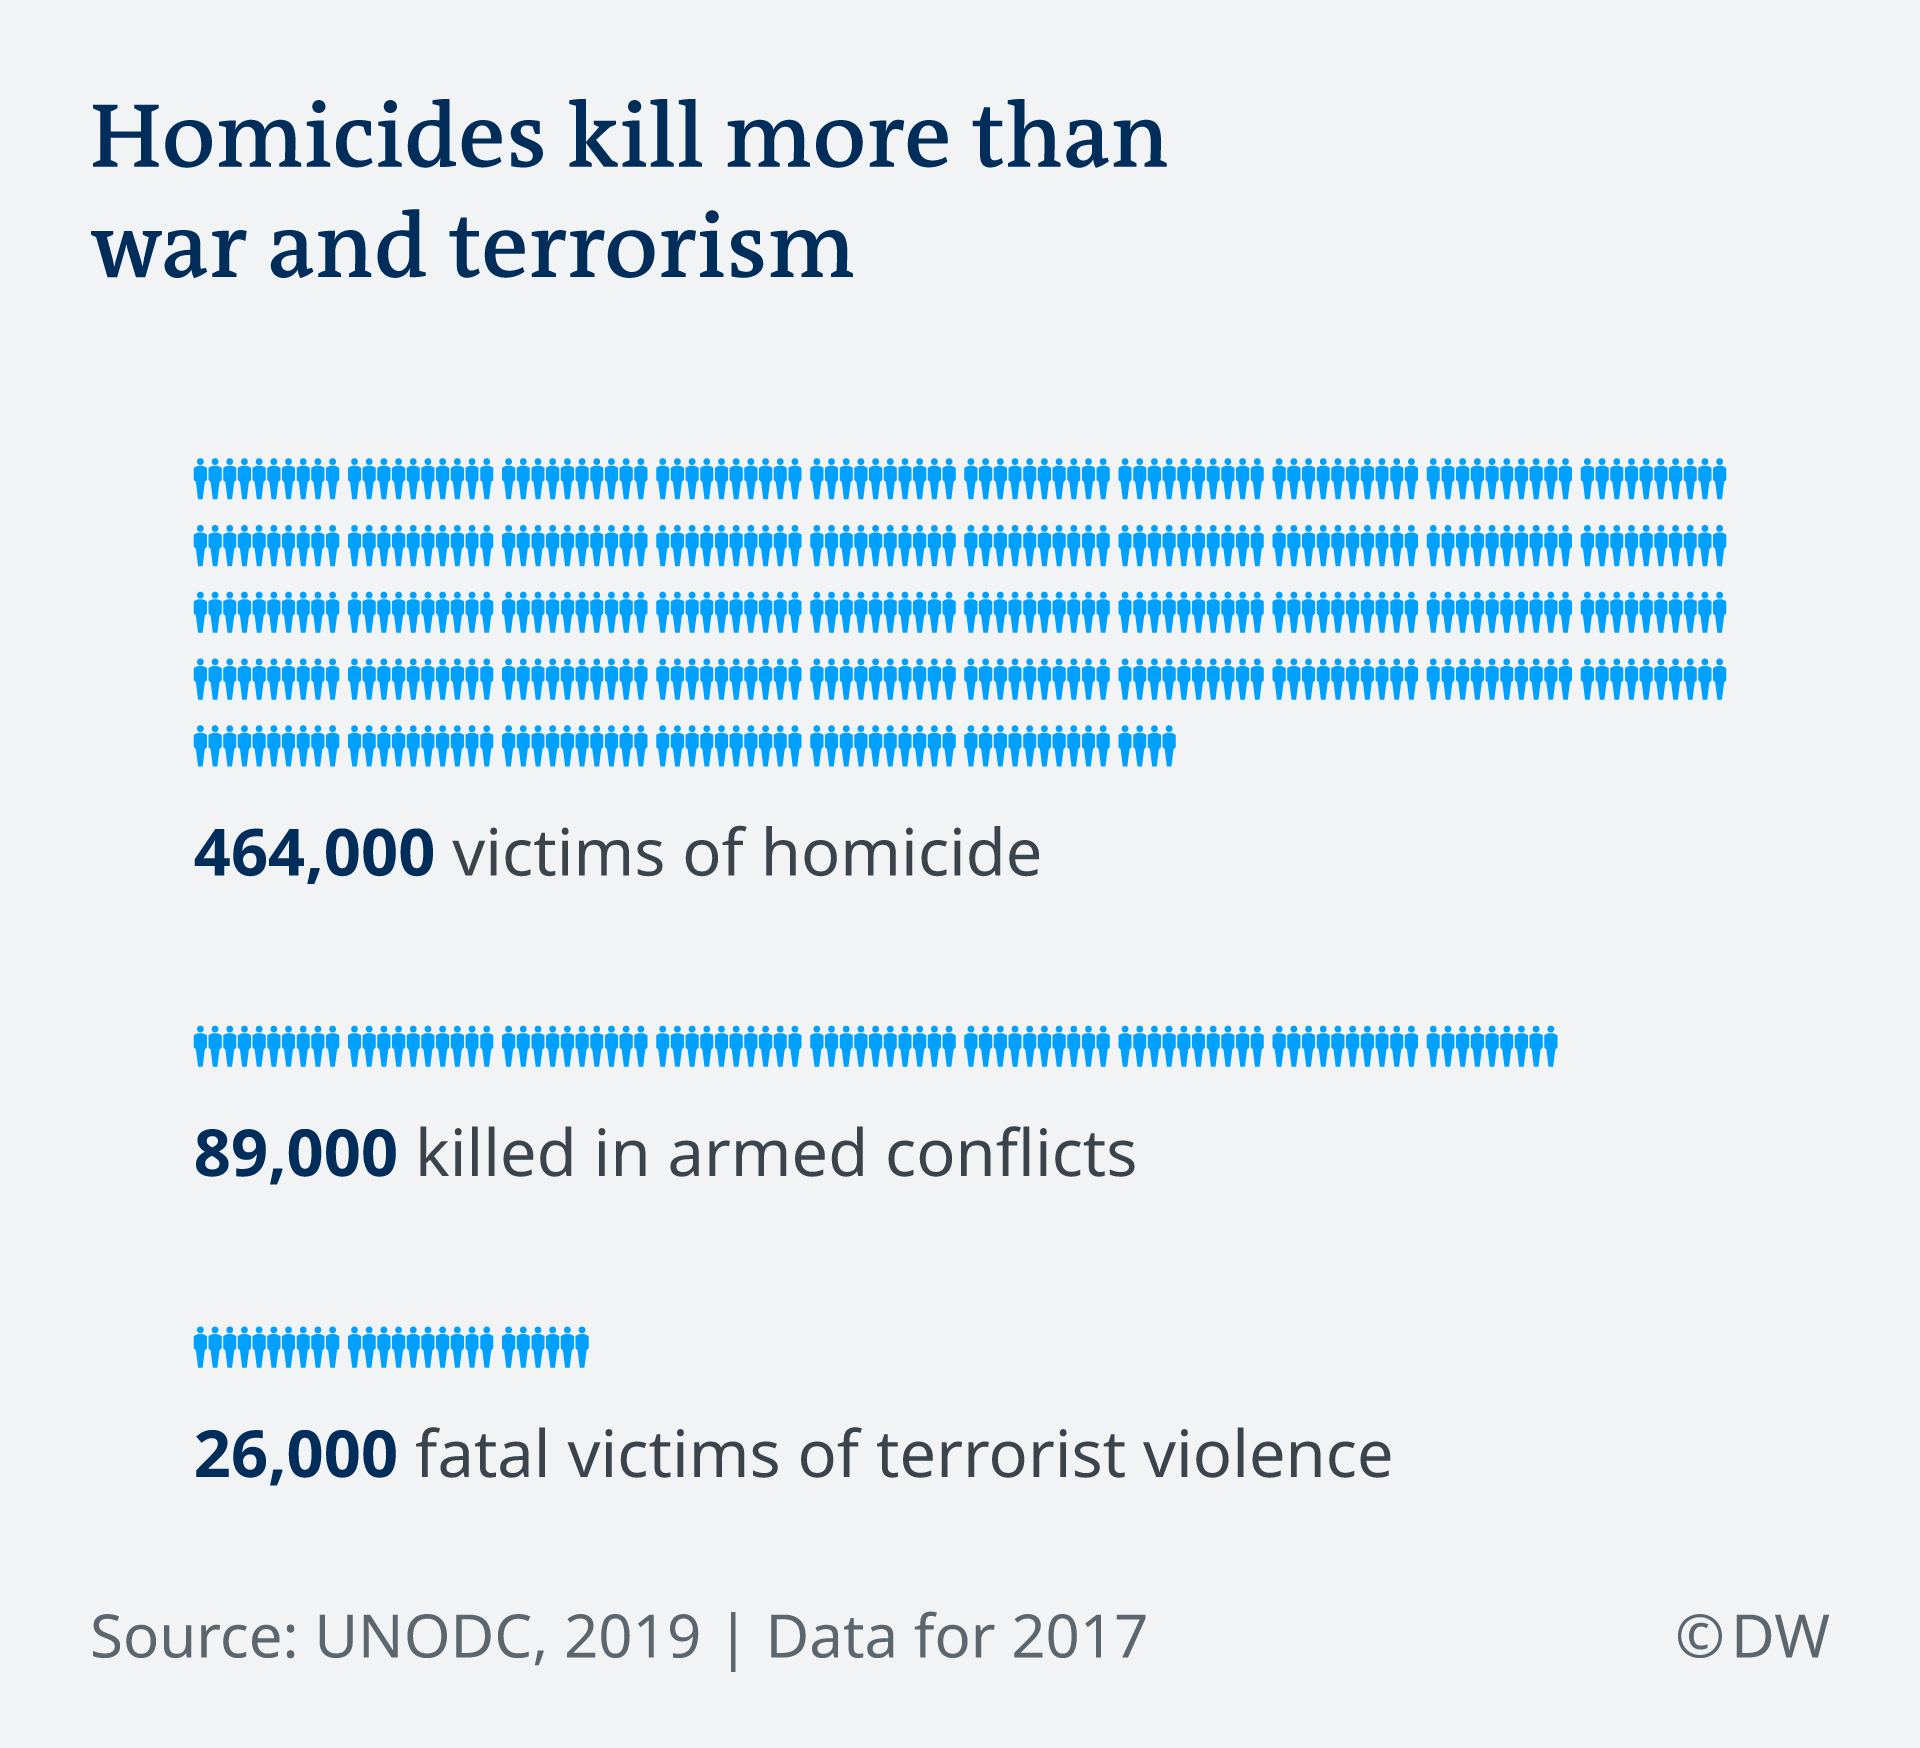 Infographic depicting the number of global homicides versus the number of deaths in armed conflicts and terror attacks